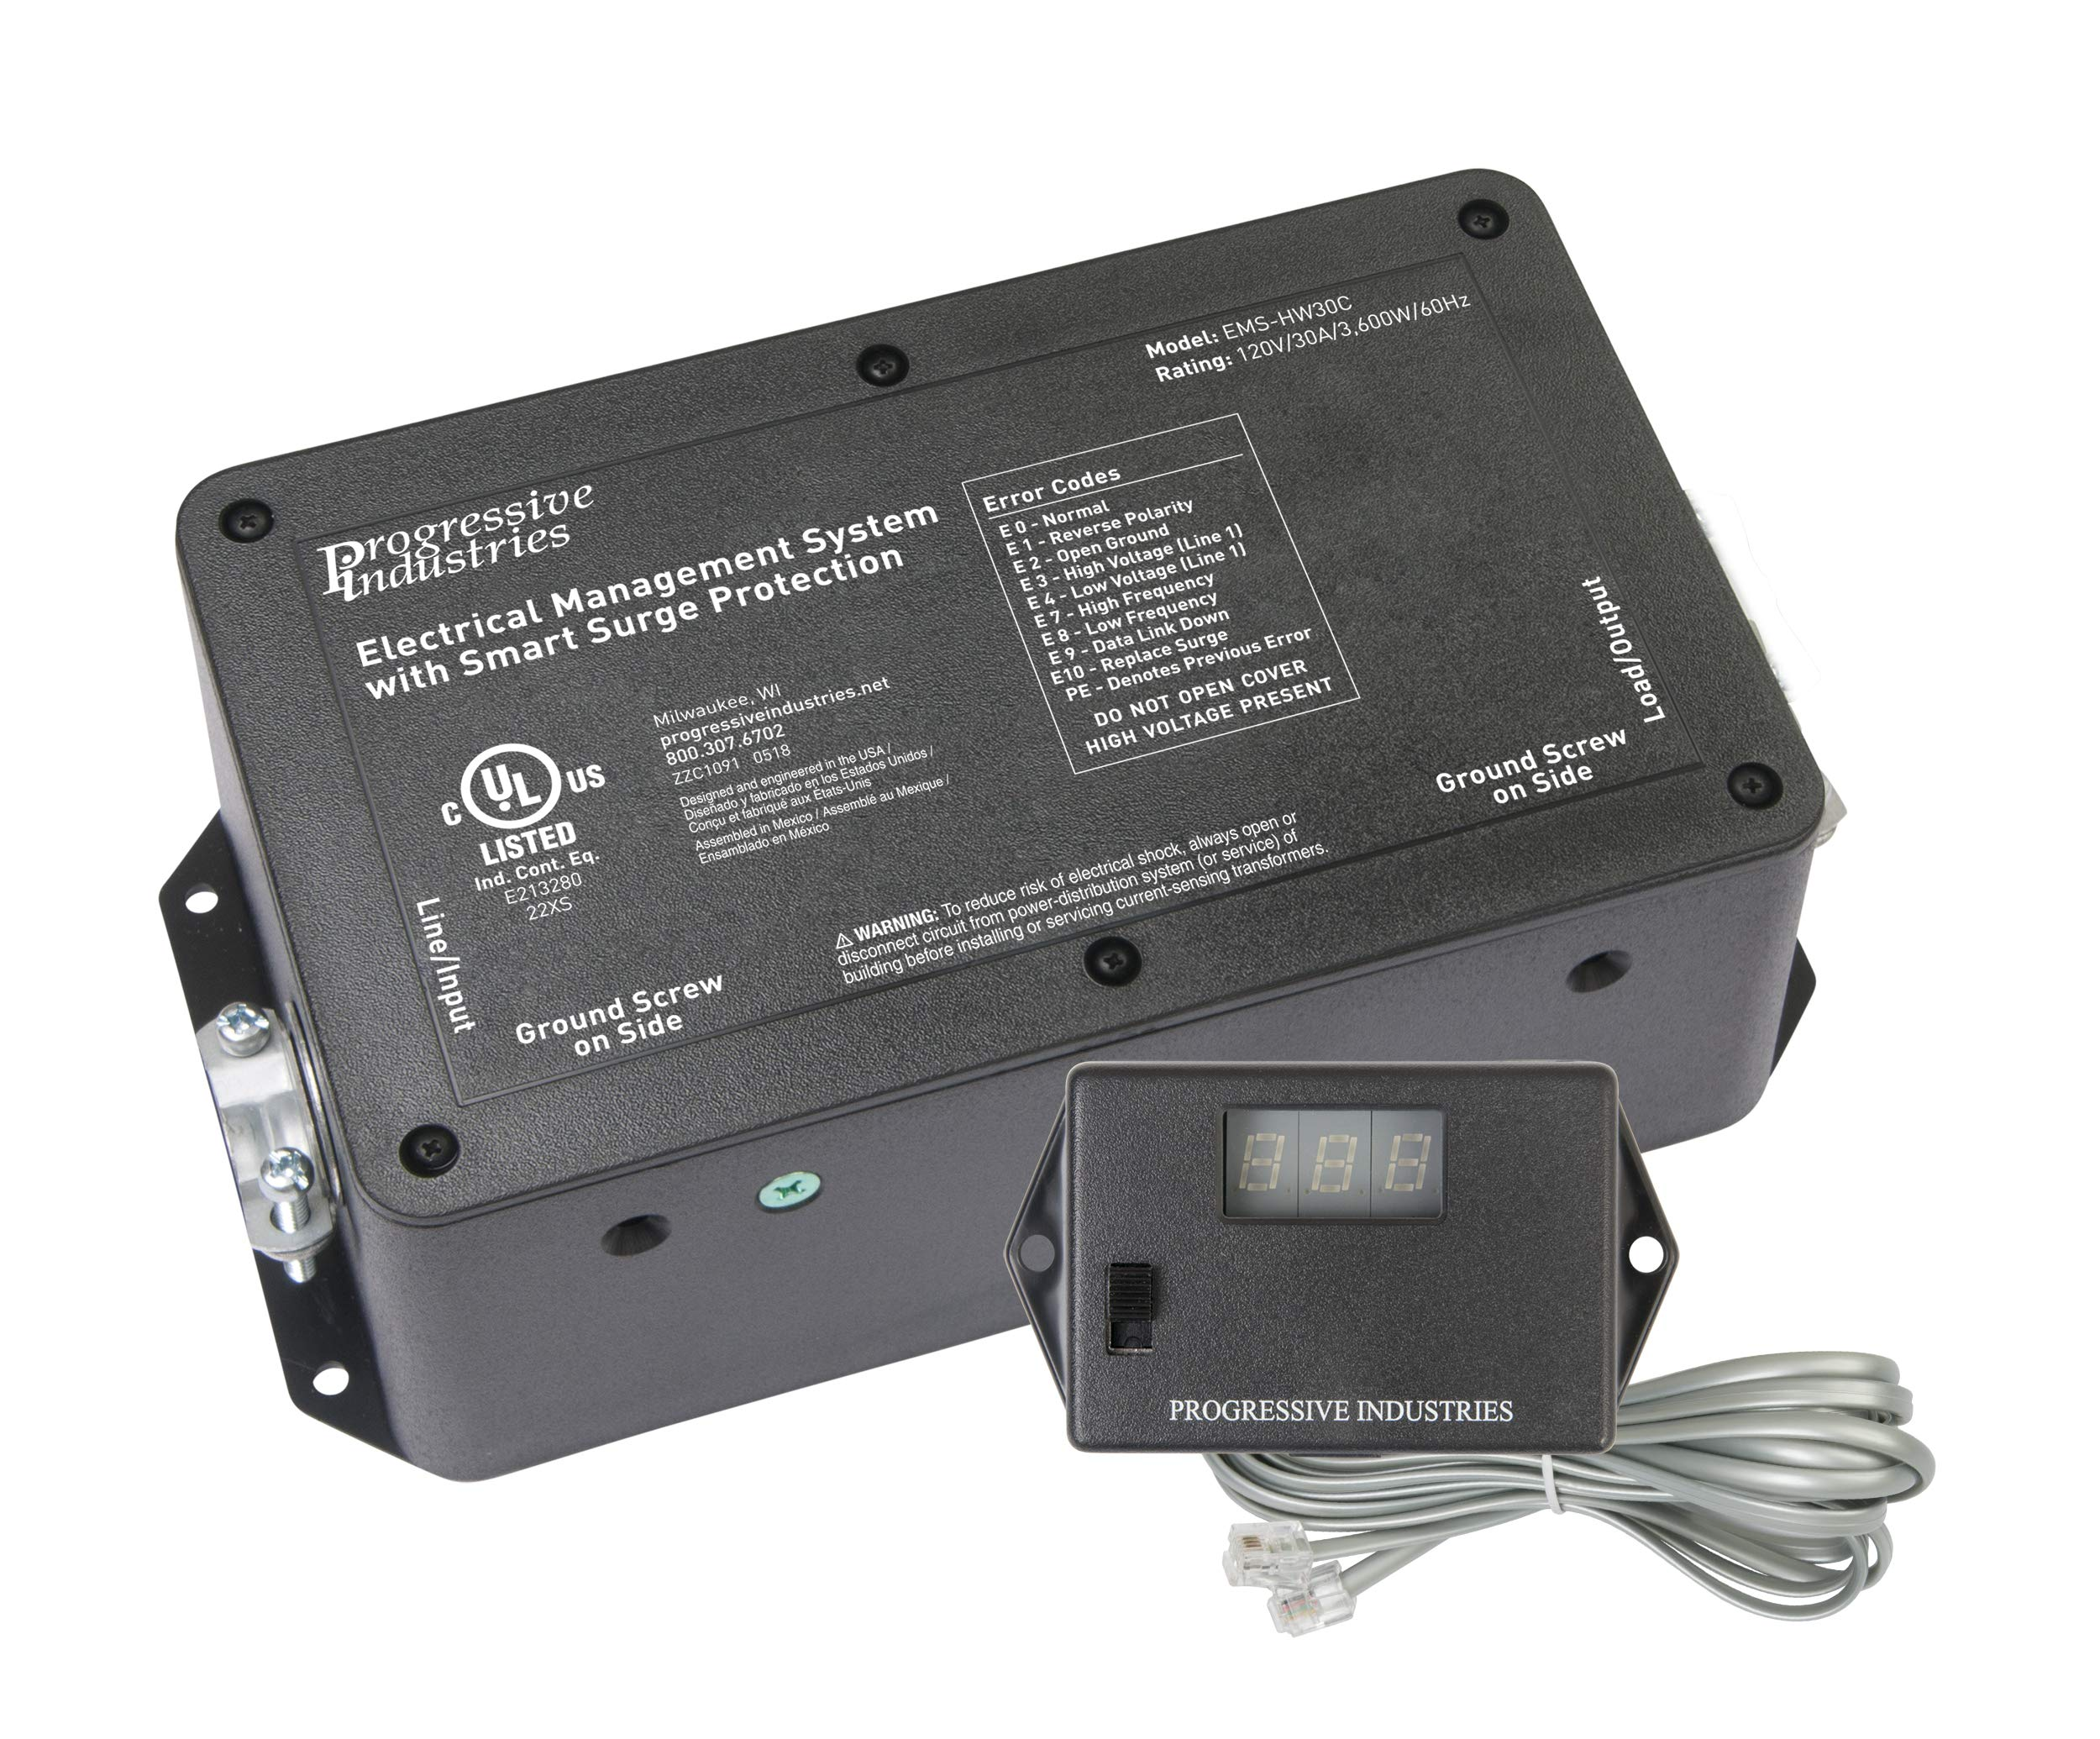 PROGRESSIVE INDUSTRIES 59016 30 Amp Hardwired EMS-HW30C RV Surge & Electrical Protector